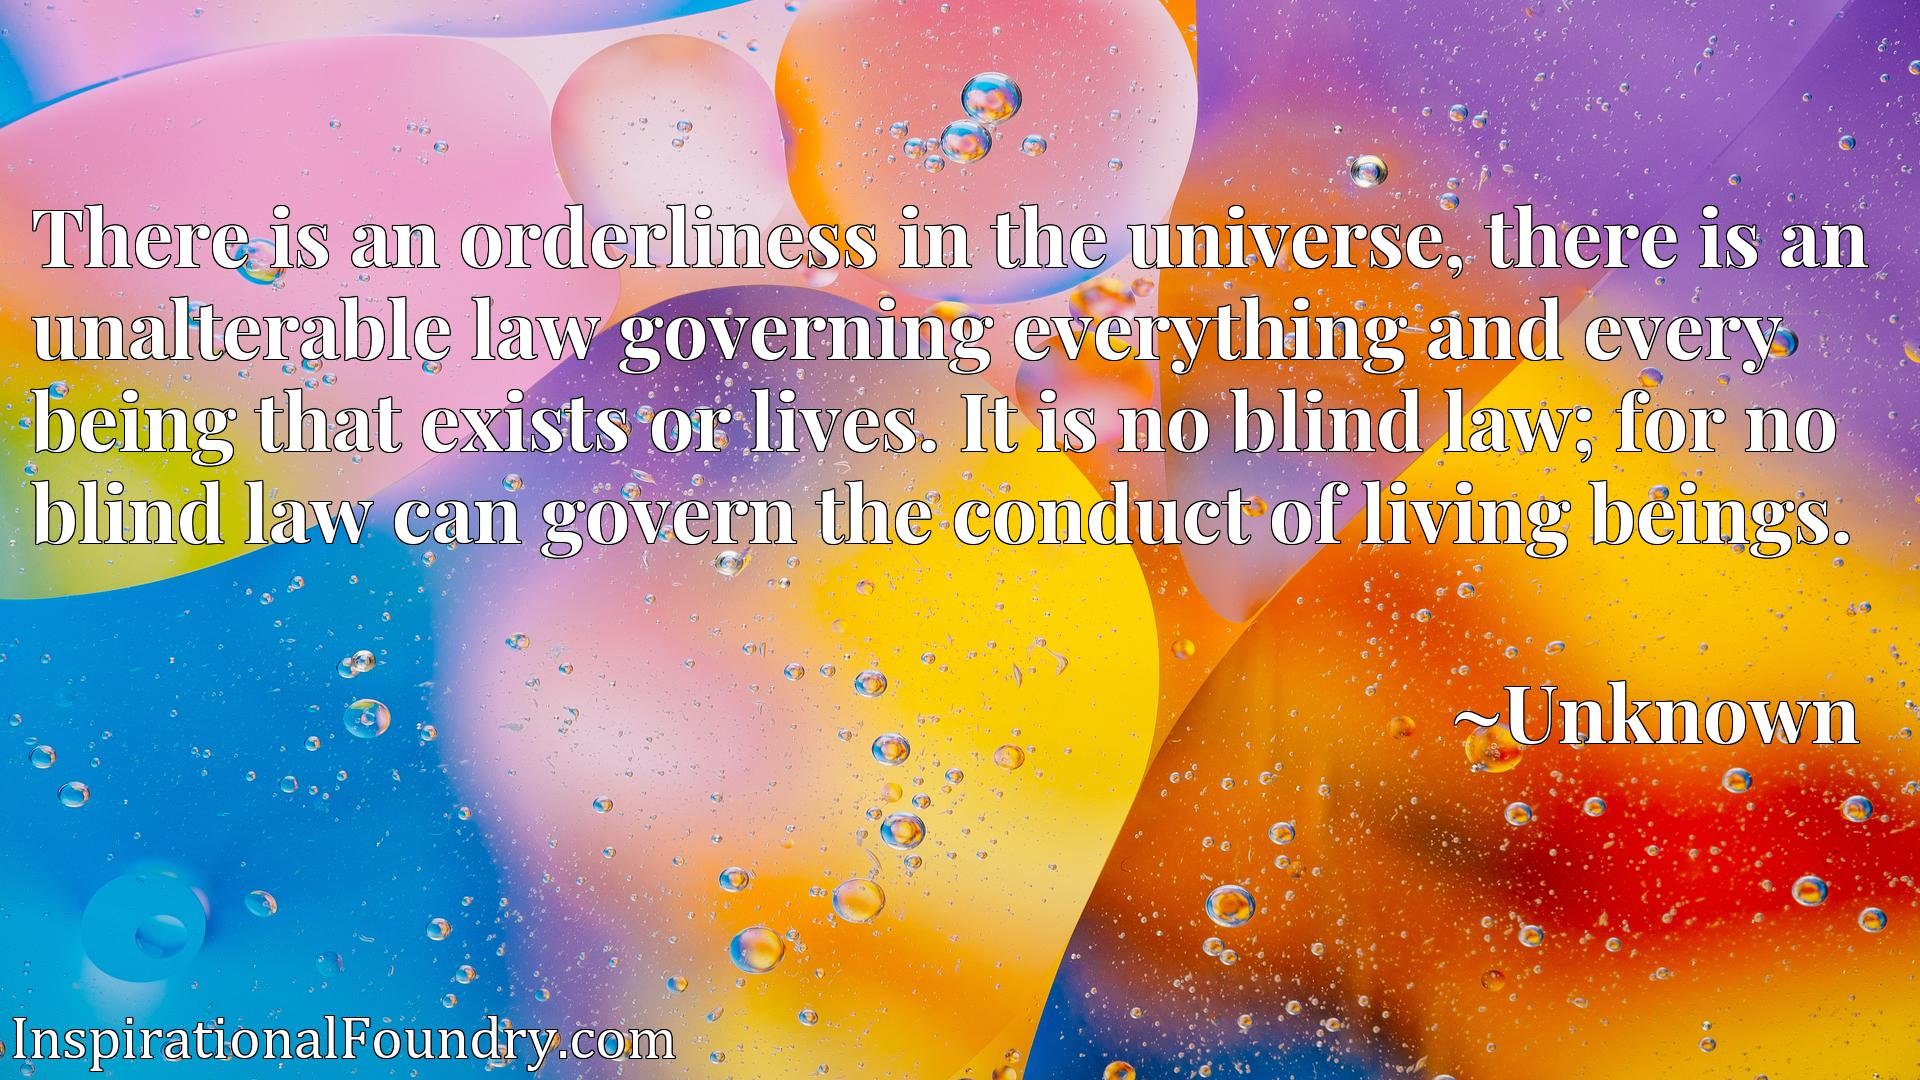 There is an orderliness in the universe, there is an unalterable law governing everything and every being that exists or lives. It is no blind law; for no blind law can govern the conduct of living beings.